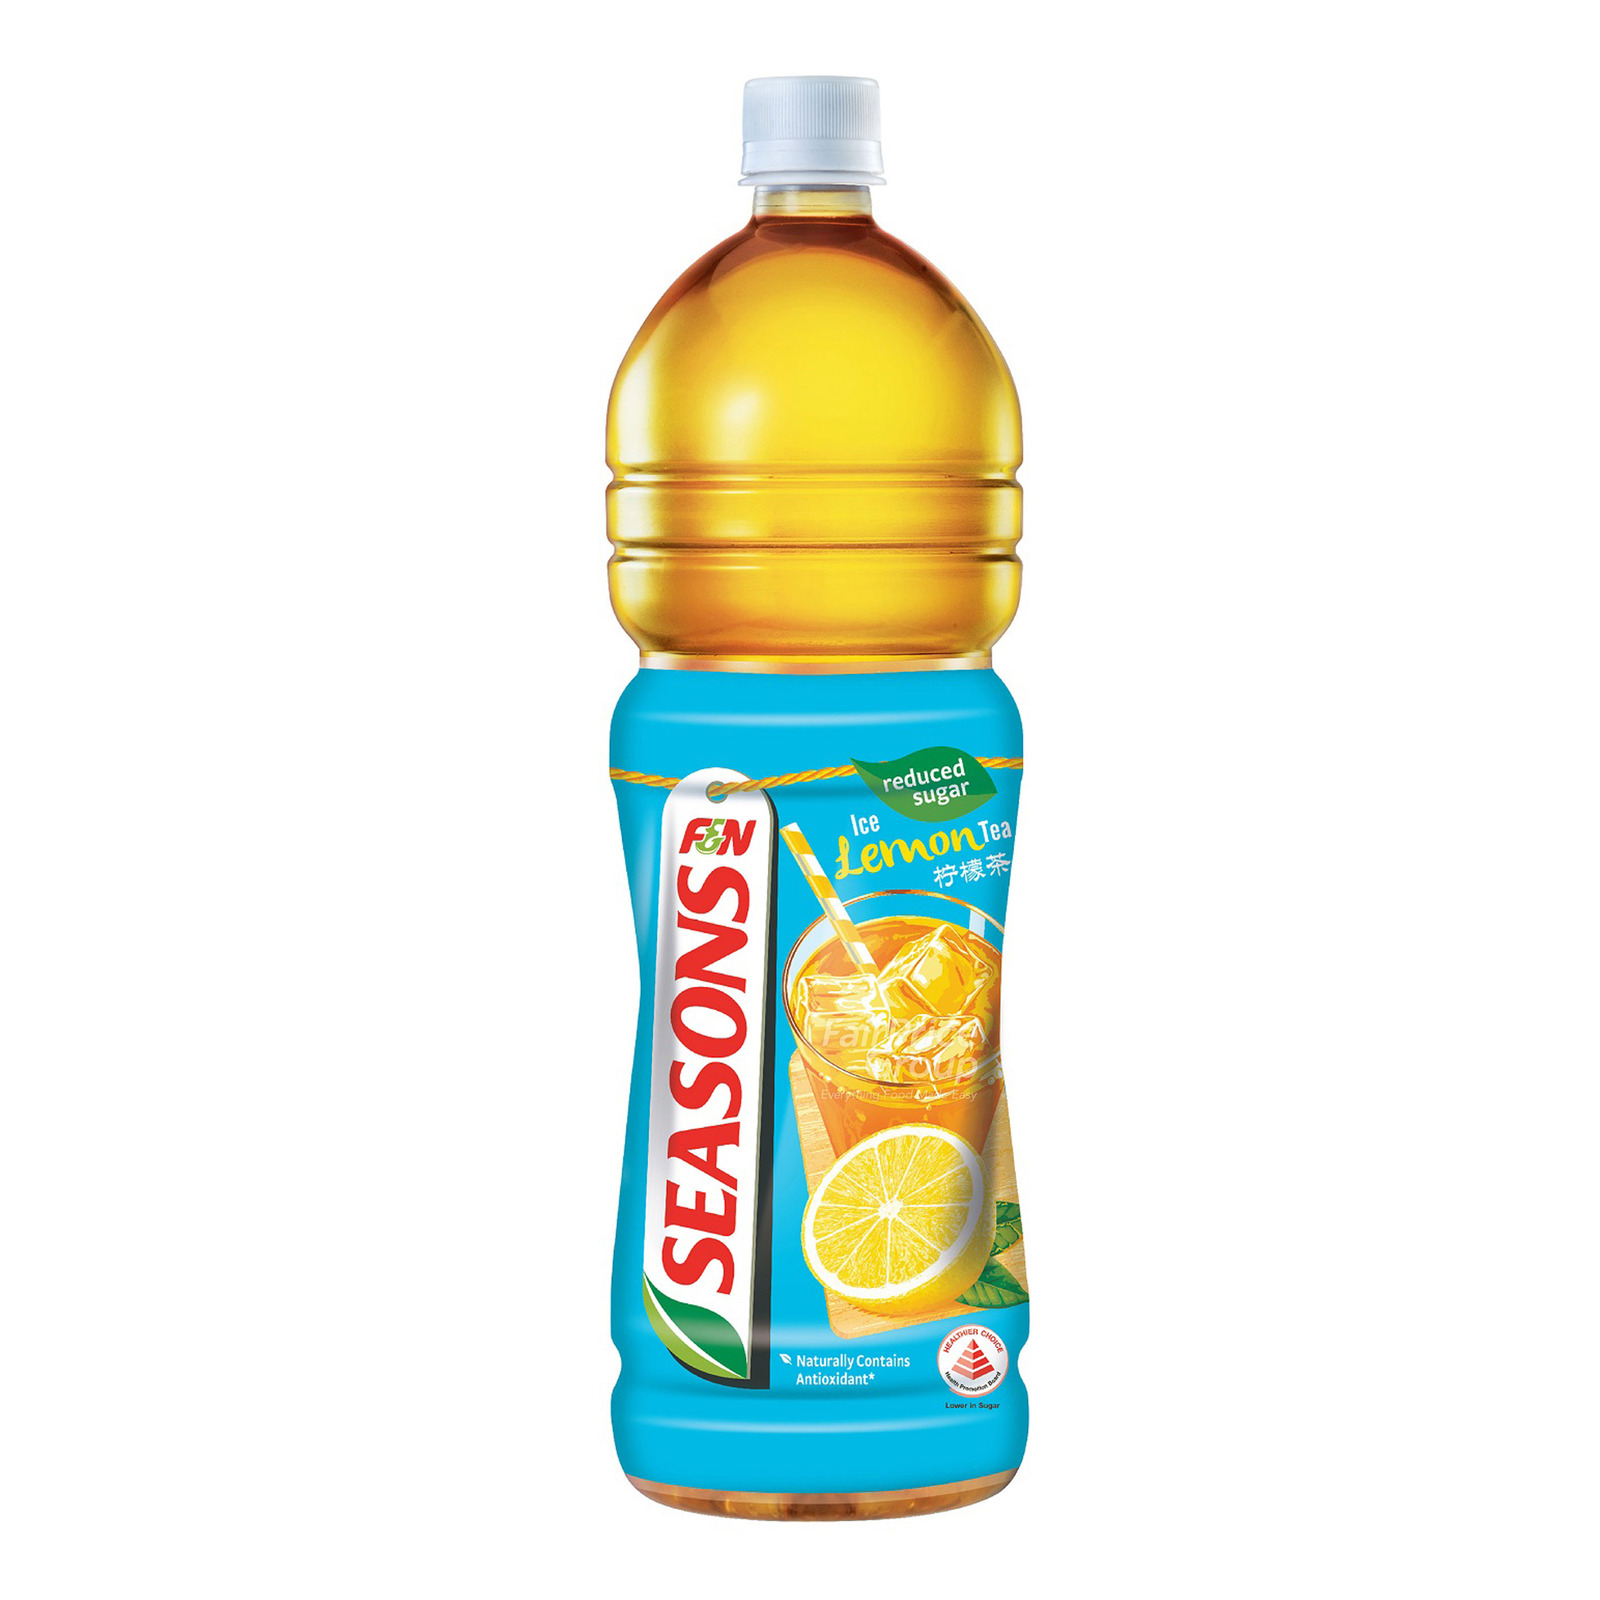 F&N Seasons Bottle Drink- Ice Lemon Tea (Reduced Sugar)